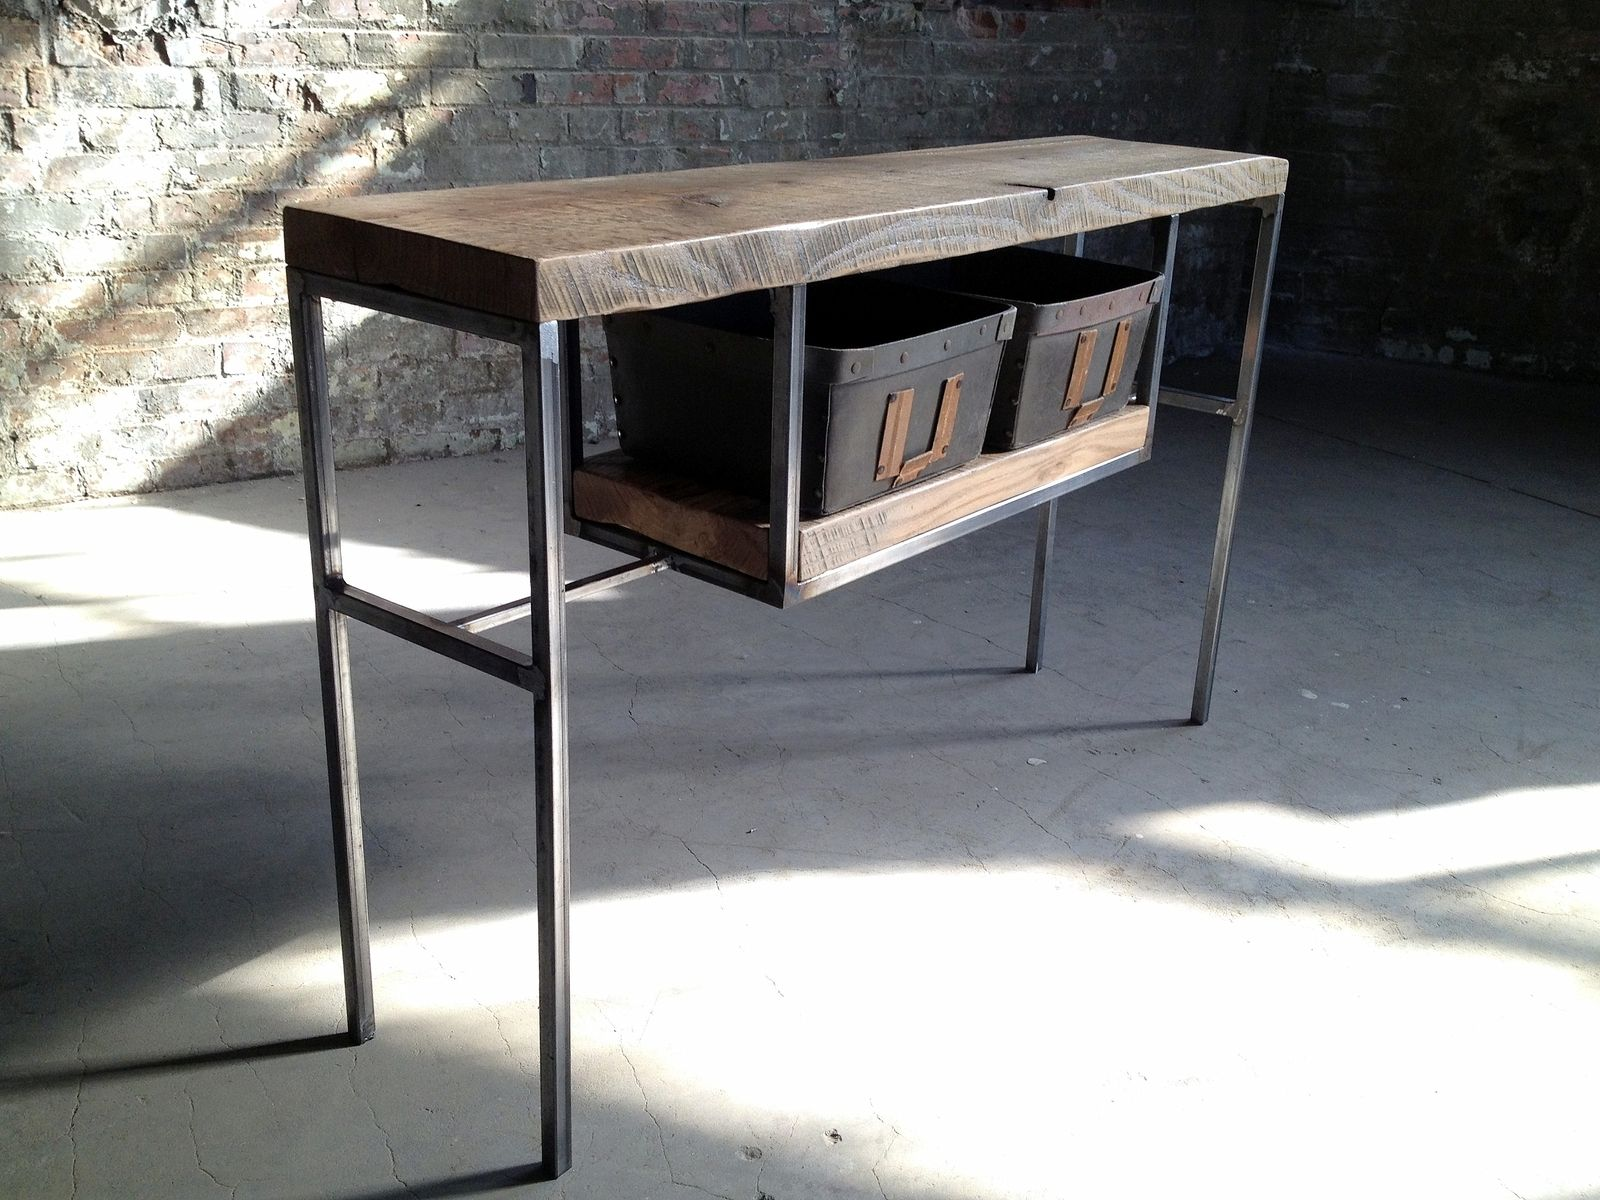 Entry Table/ Sofa Table/ Console Table Made Of Reclaimed Wood And Steel With Salvaged Bins